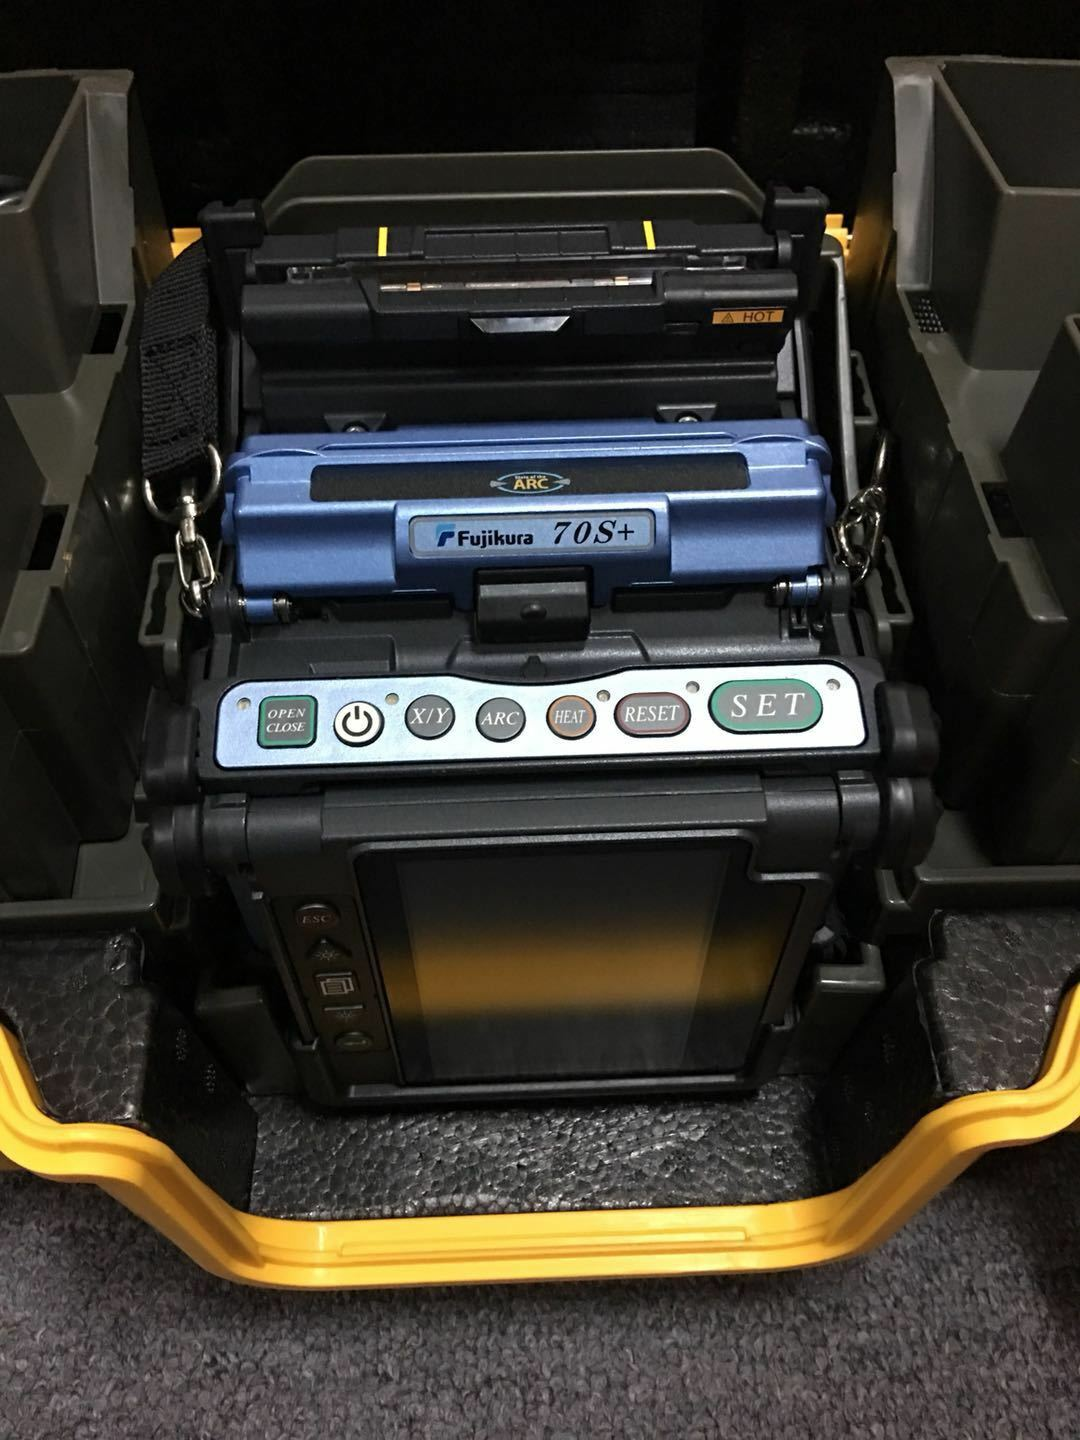 Sumitomo LYNX-CustomFit Splice-On Connector Fusion Splicer HolderRIGHT SIDE ONLY